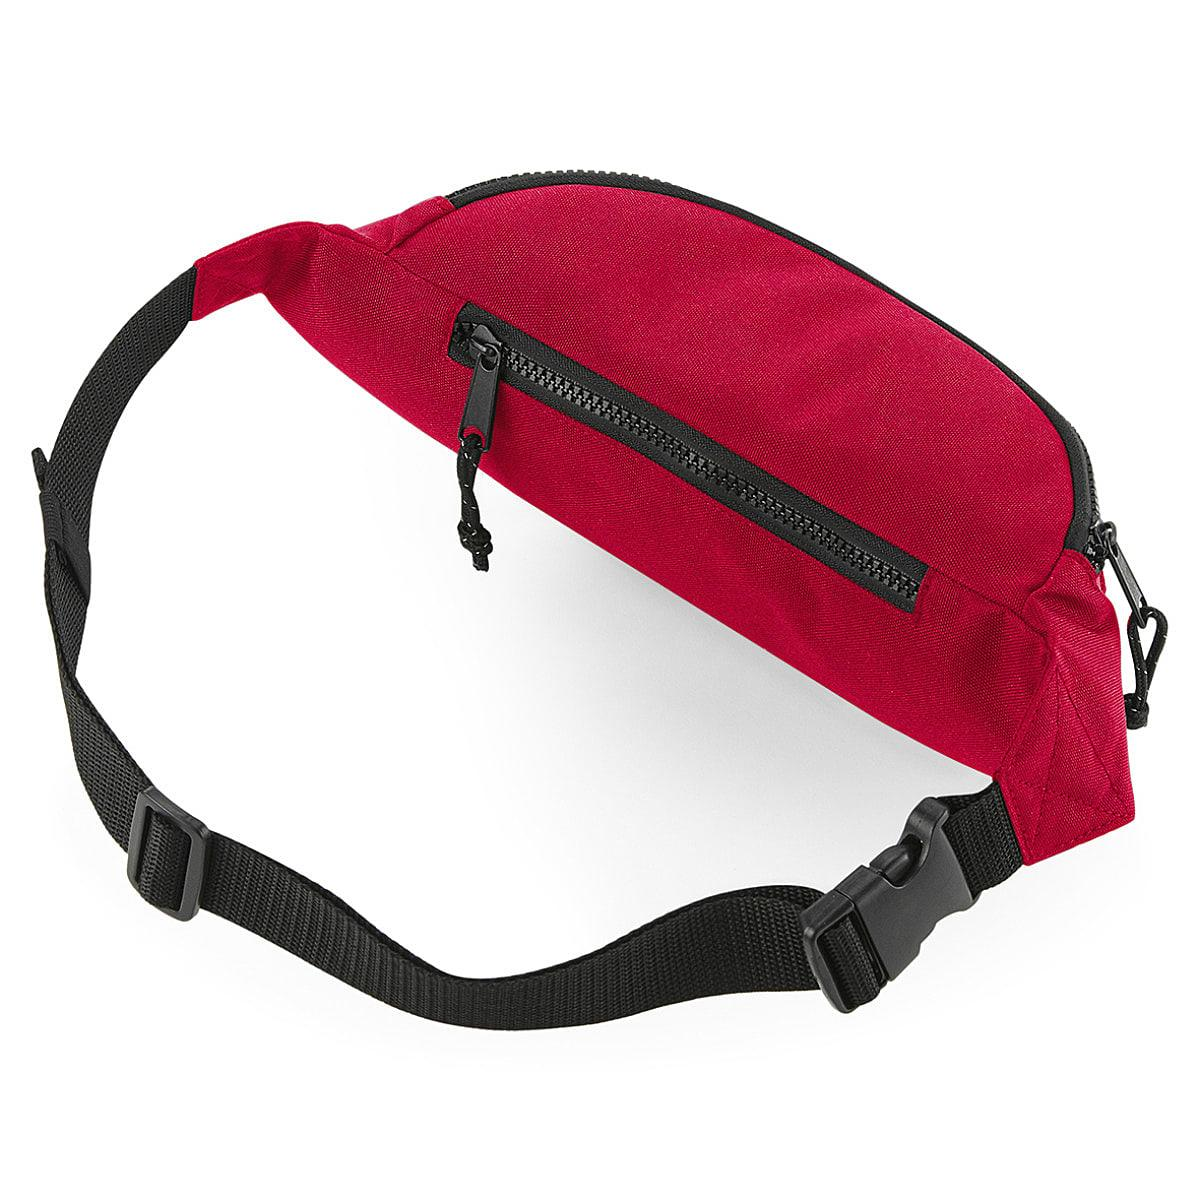 Bagbase Recycled Waistpack in Classic Red (Product Code: BG282)